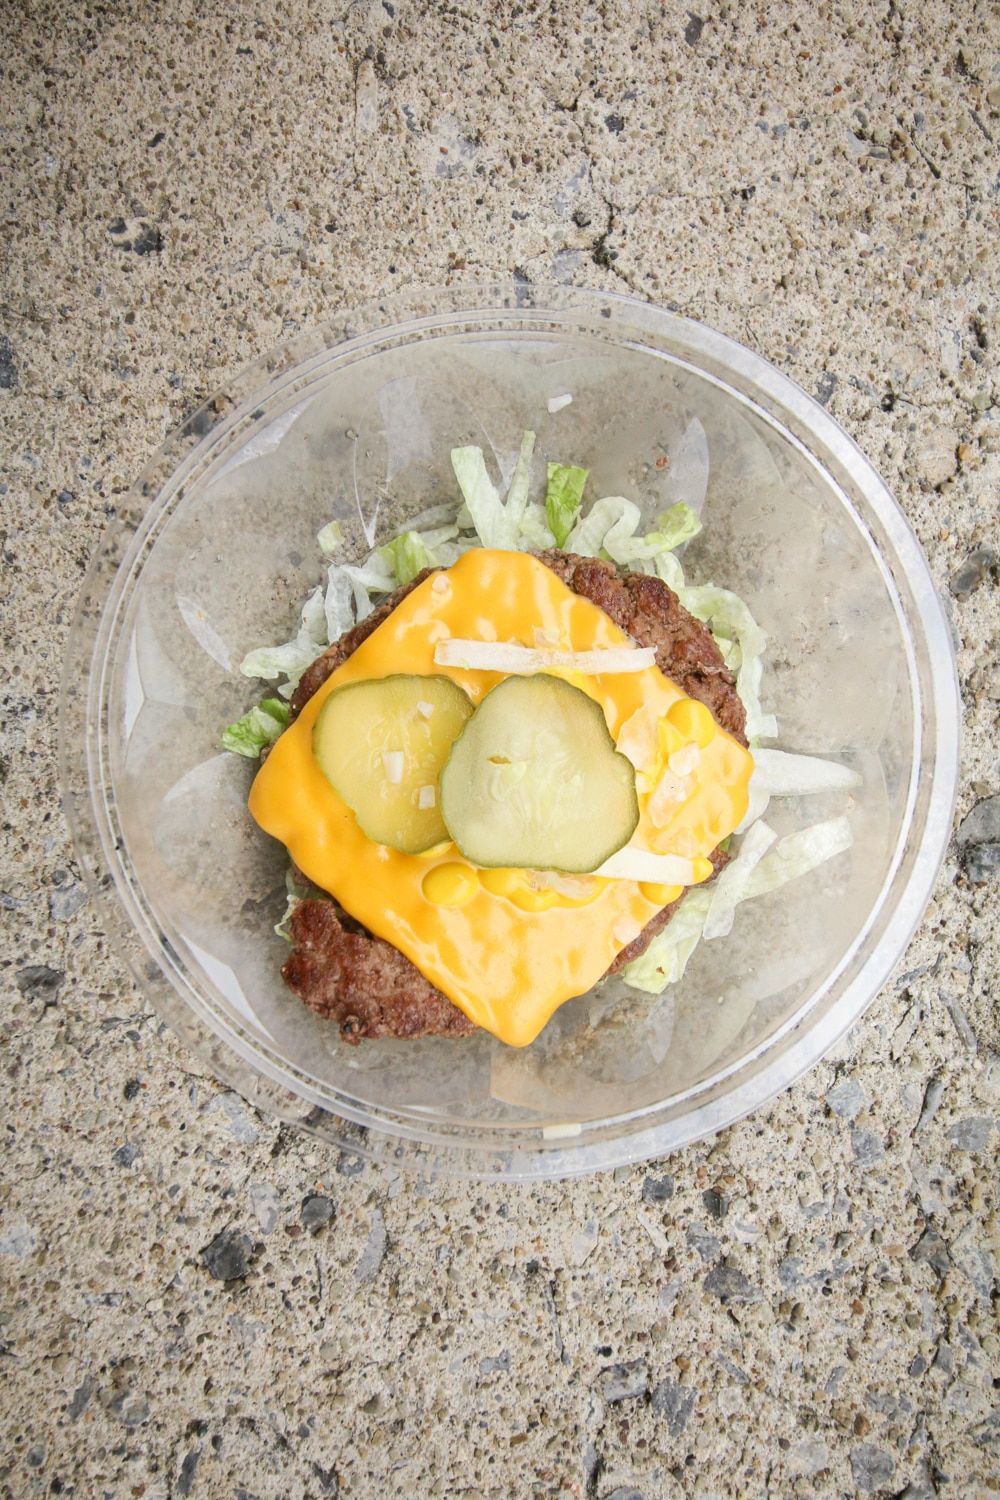 A ¼ pound beef patty on top of shredded lettuce and topped with cheese, sliced pickles, onions, and mustard.